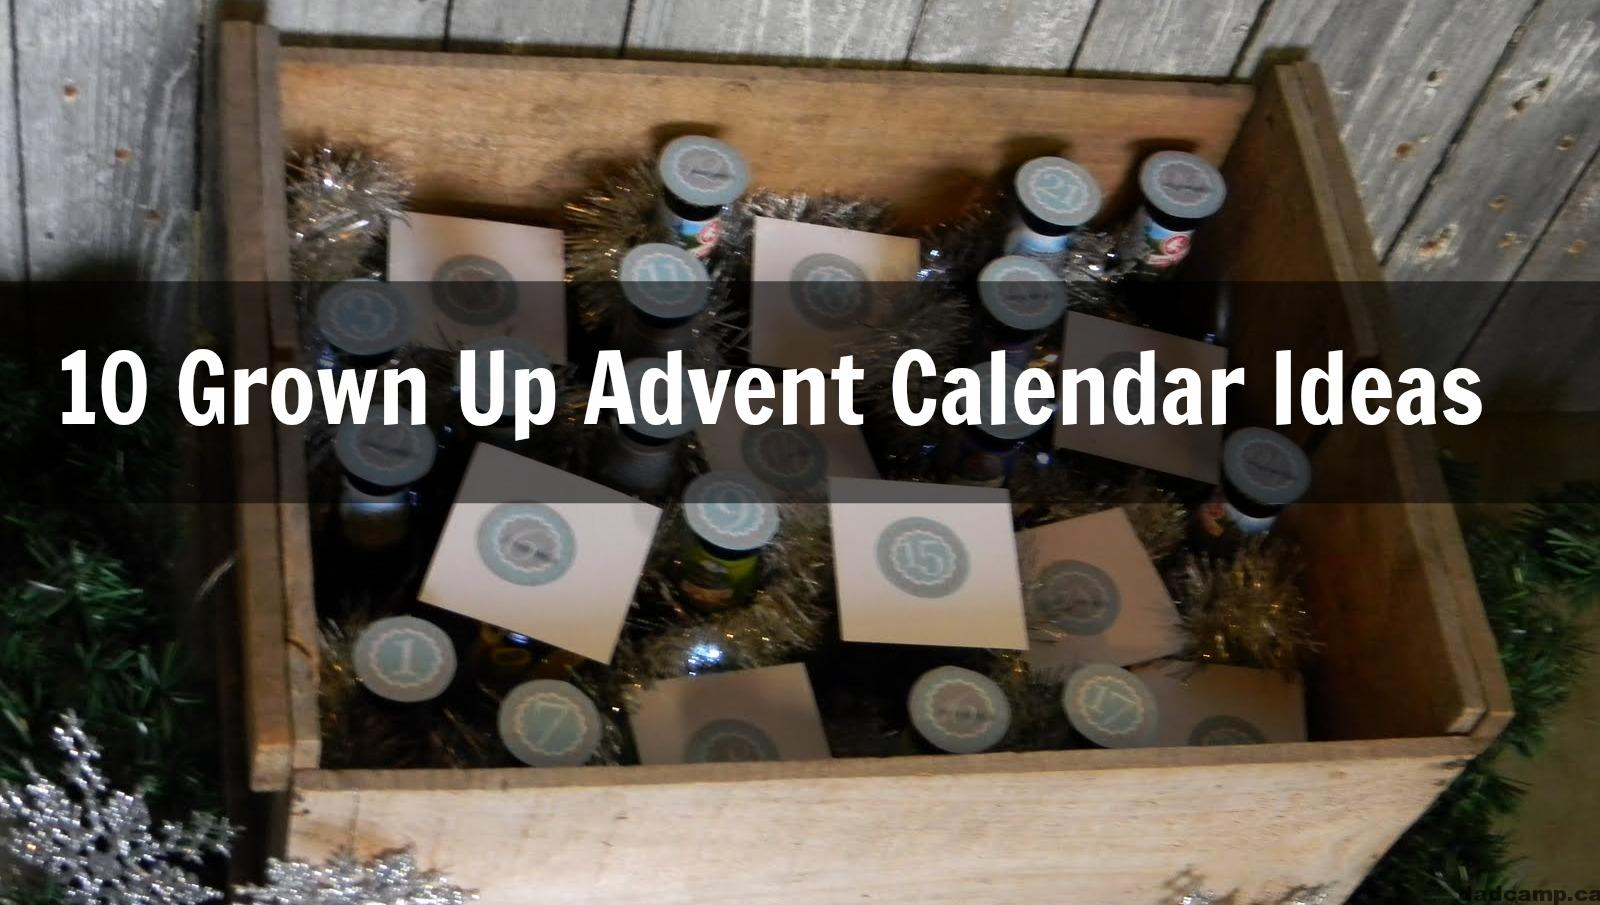 Grown Up Advent Calendar Ideas